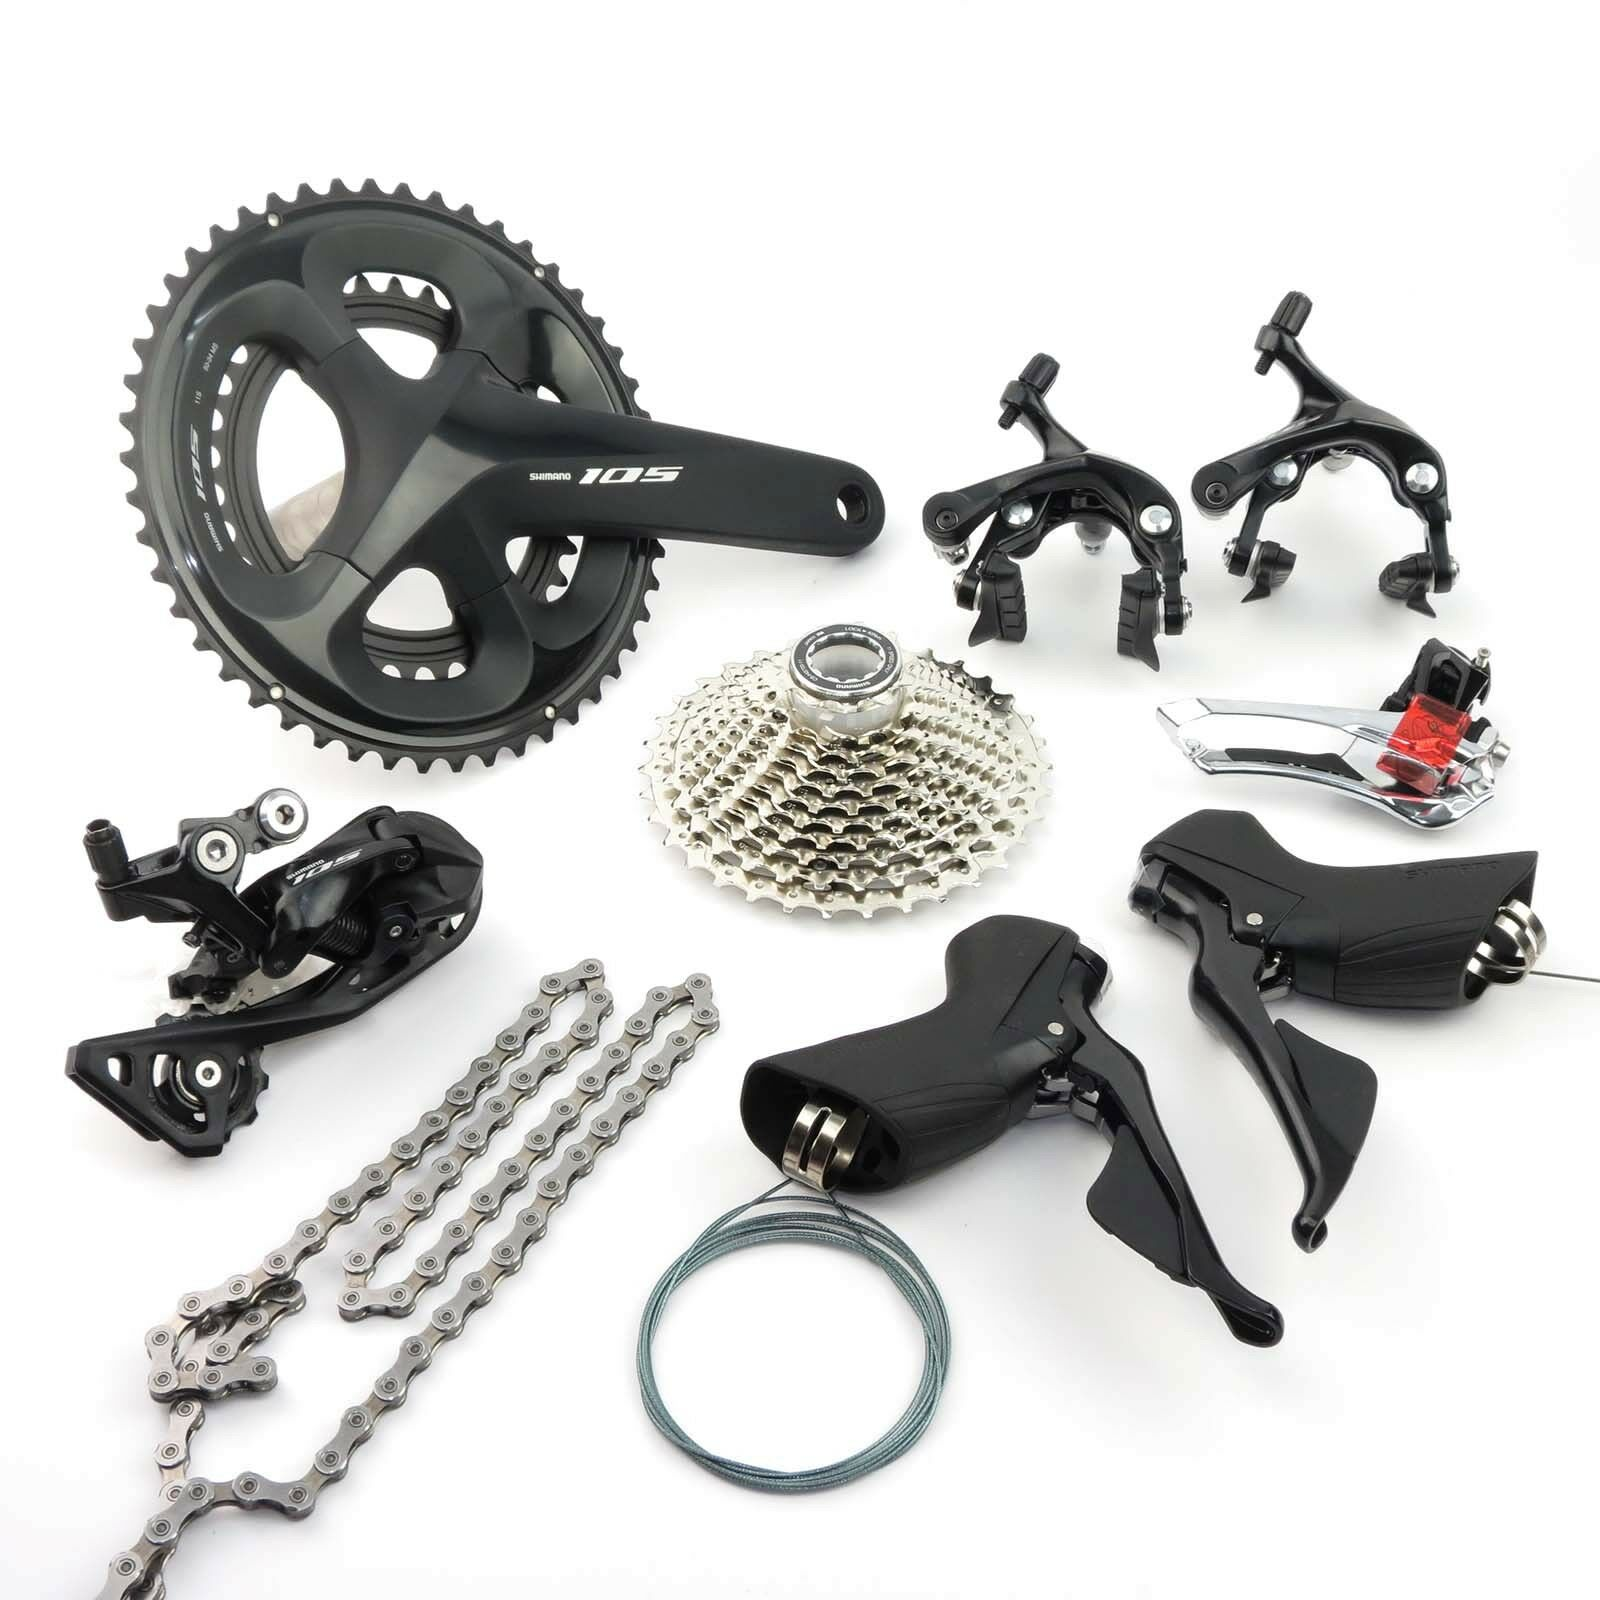 Shimano 105 R7000 2 x  11 speed 52-36T Road Bike Bicycle Groupset Build kit  for sale online